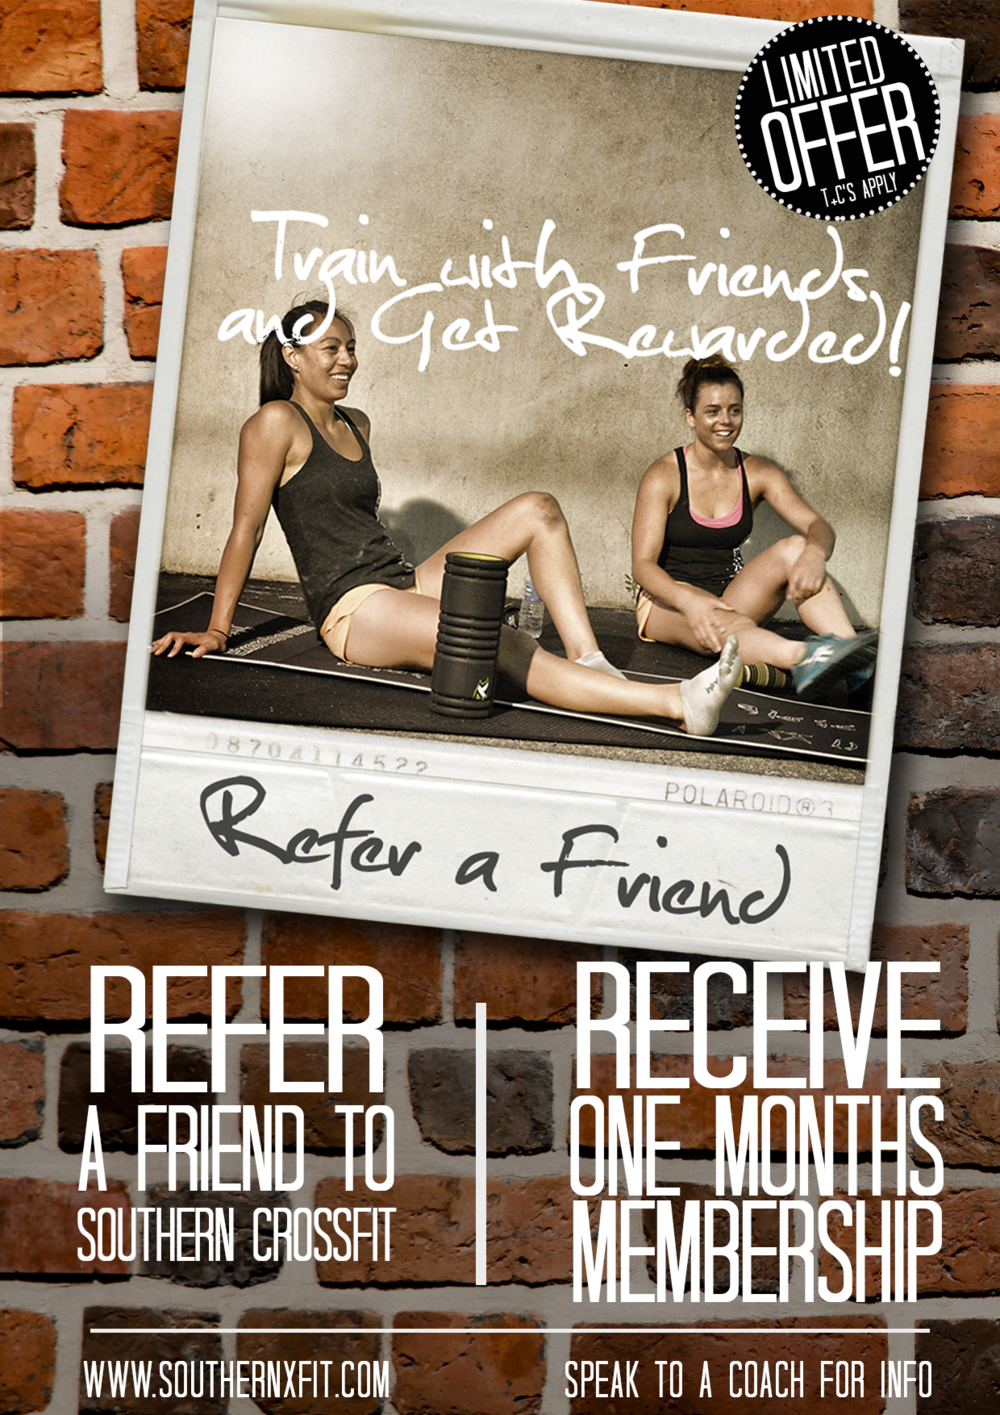 Southern CrossFit - Bring a Friend (A4 Poster) 2 Rev 1.5.png